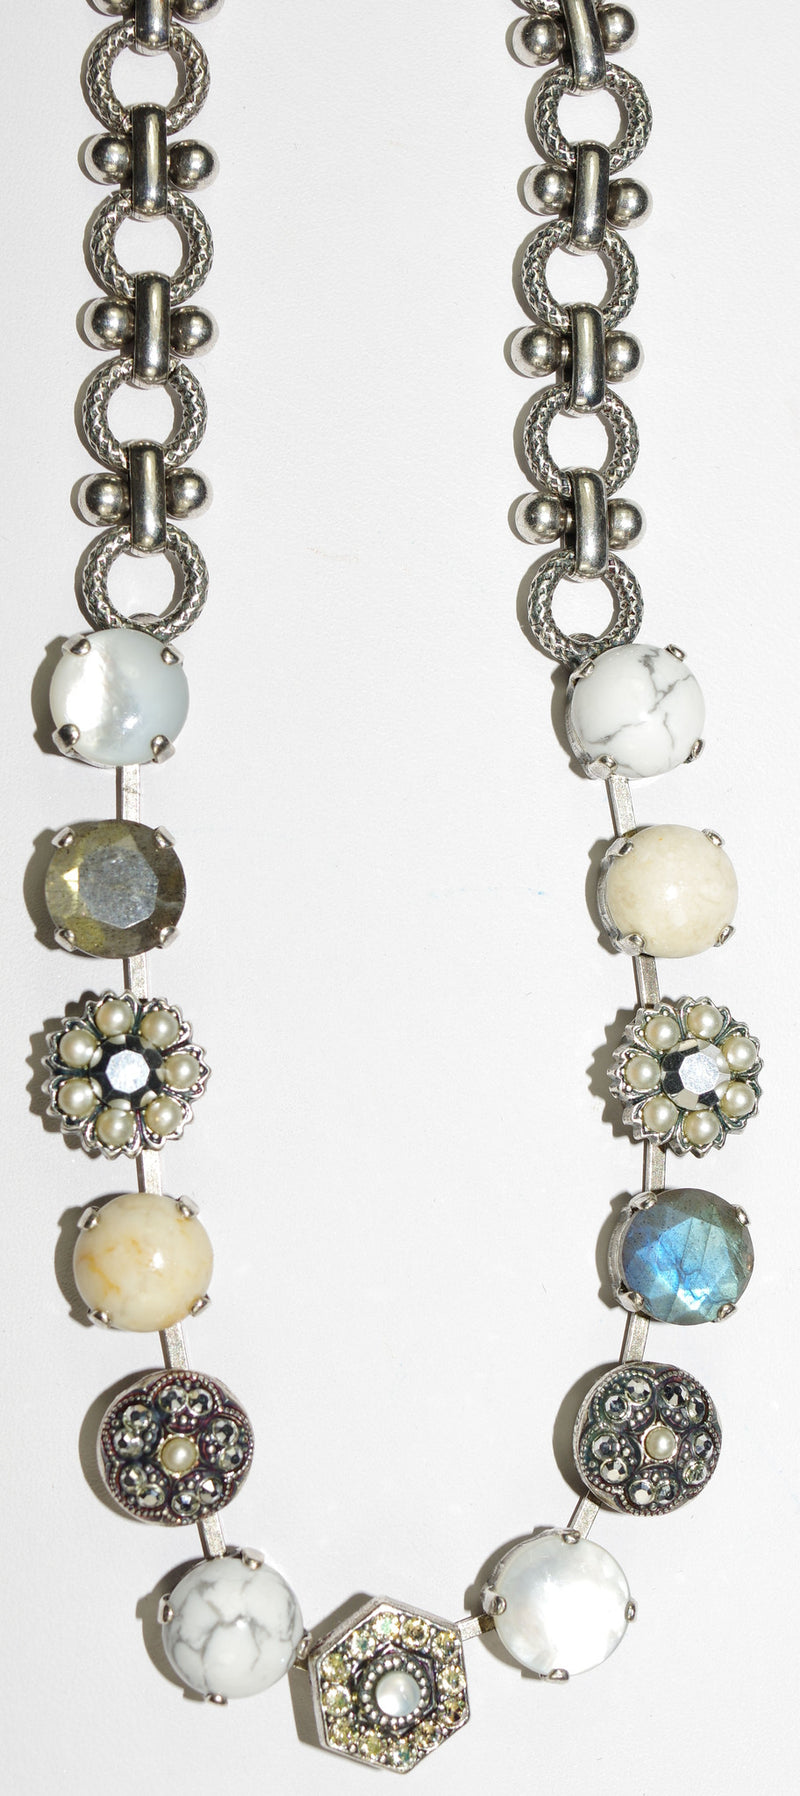 "MARIANA NECKLACE CASABLANCA DIANA: white, beige, grey, amber, pearl stones in silver setting, 18"" adjustable chain"